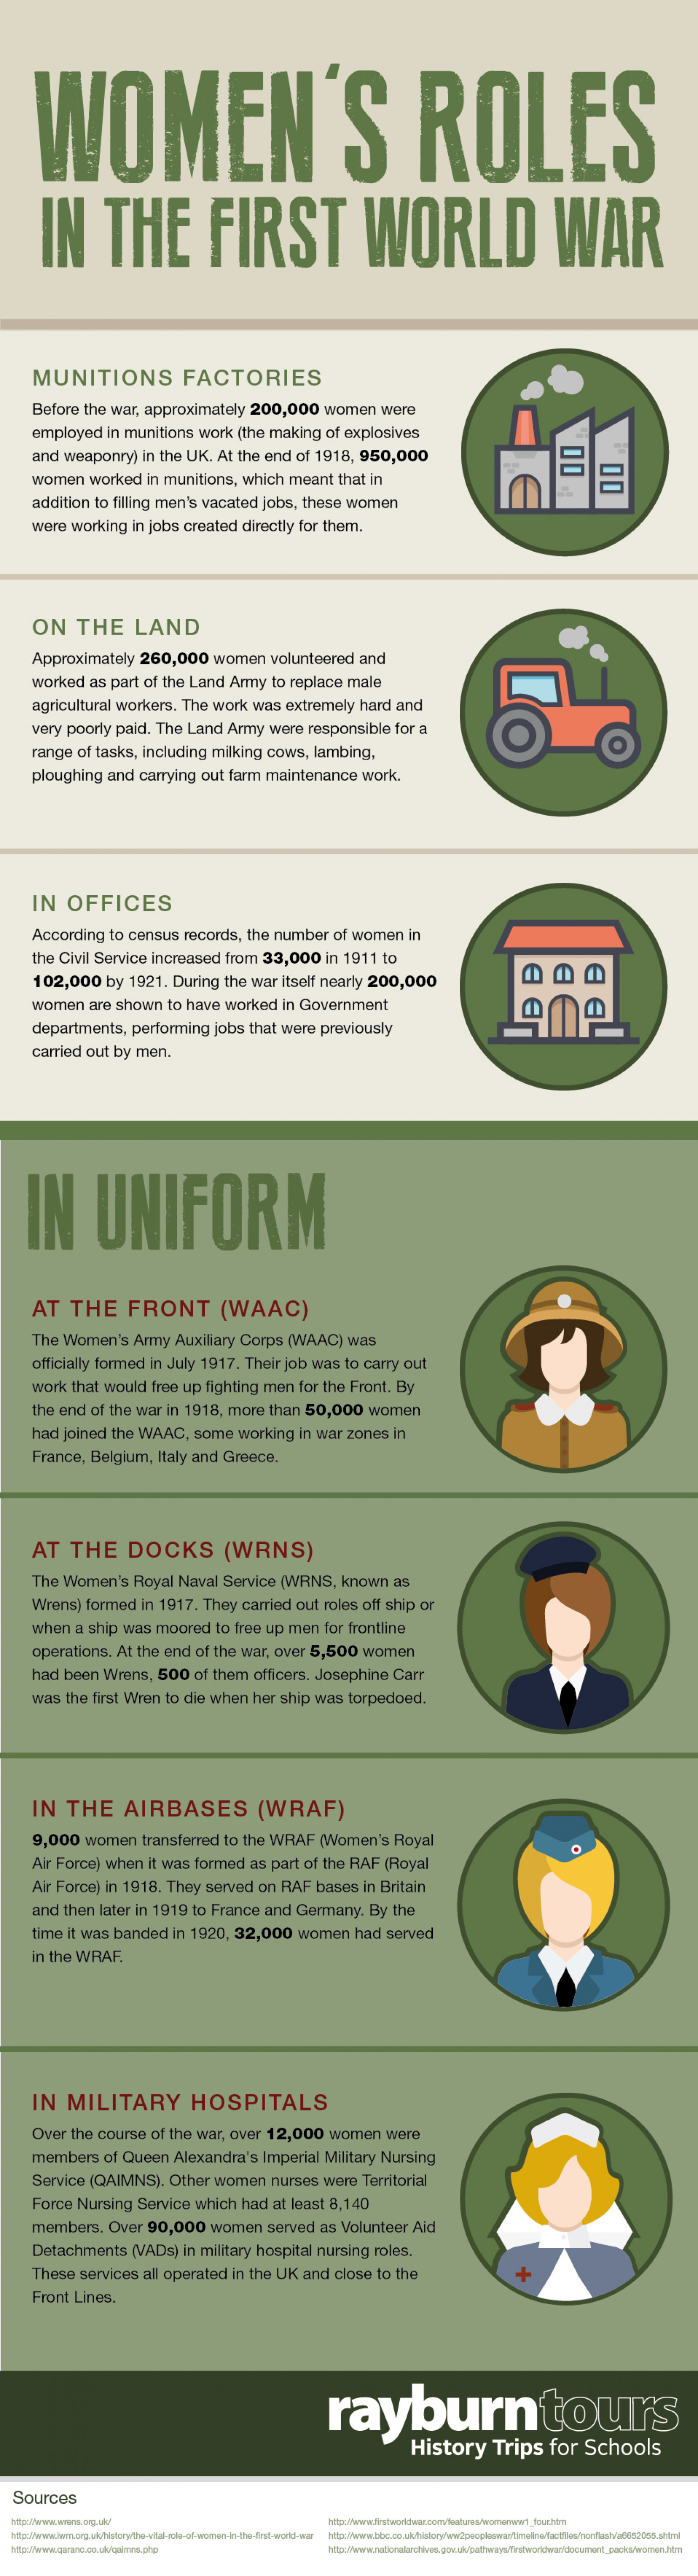 Women's Roles in the First World War Infographic